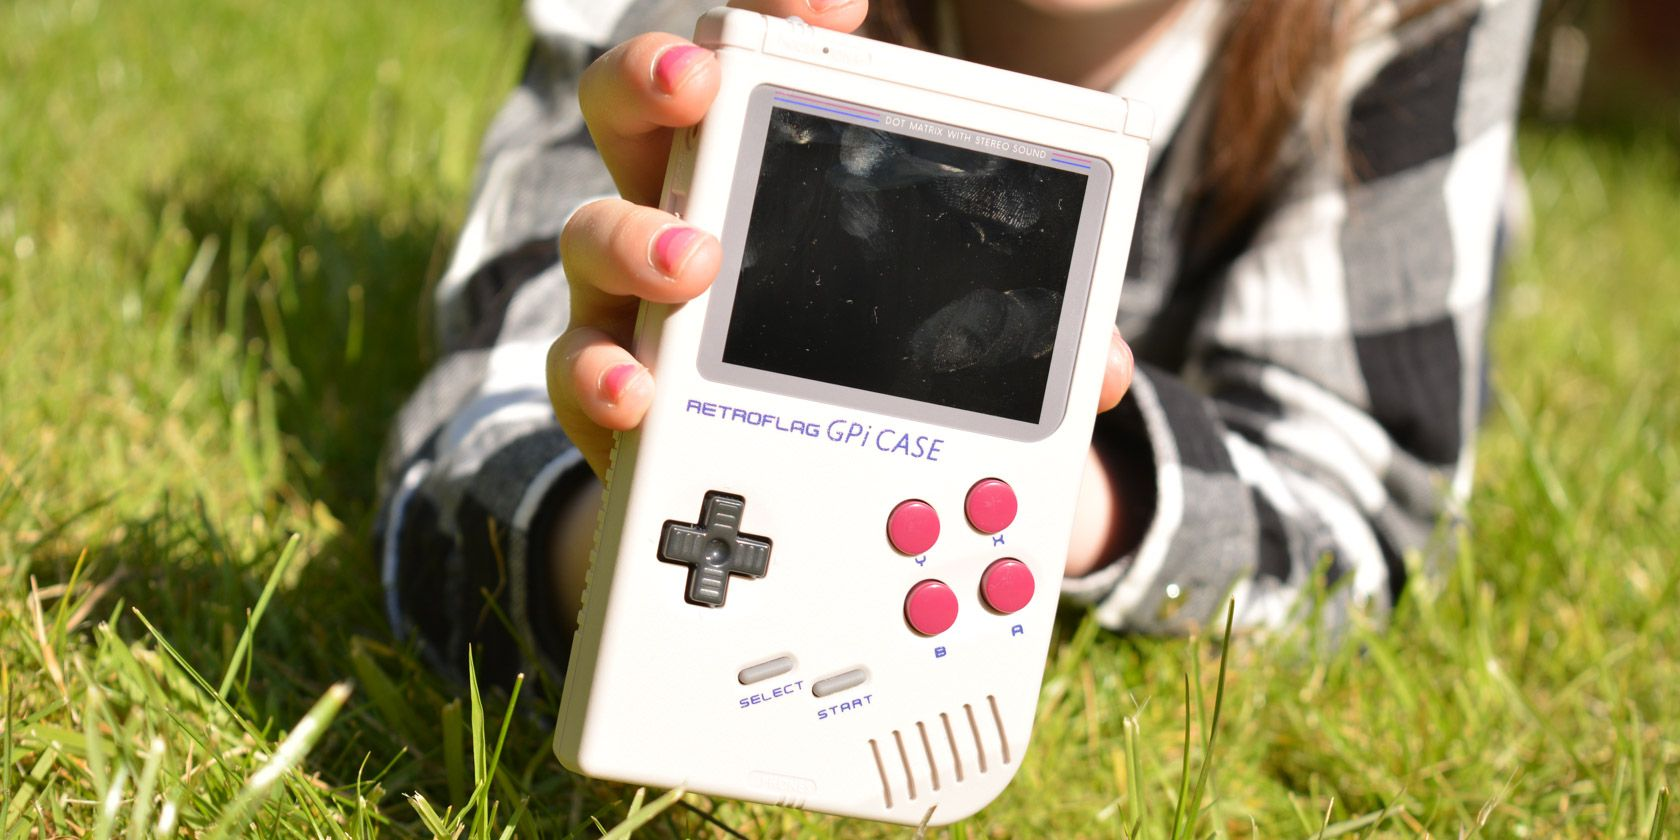 Retroflag GPi is the Ultimate Portable Retro Gaming Console